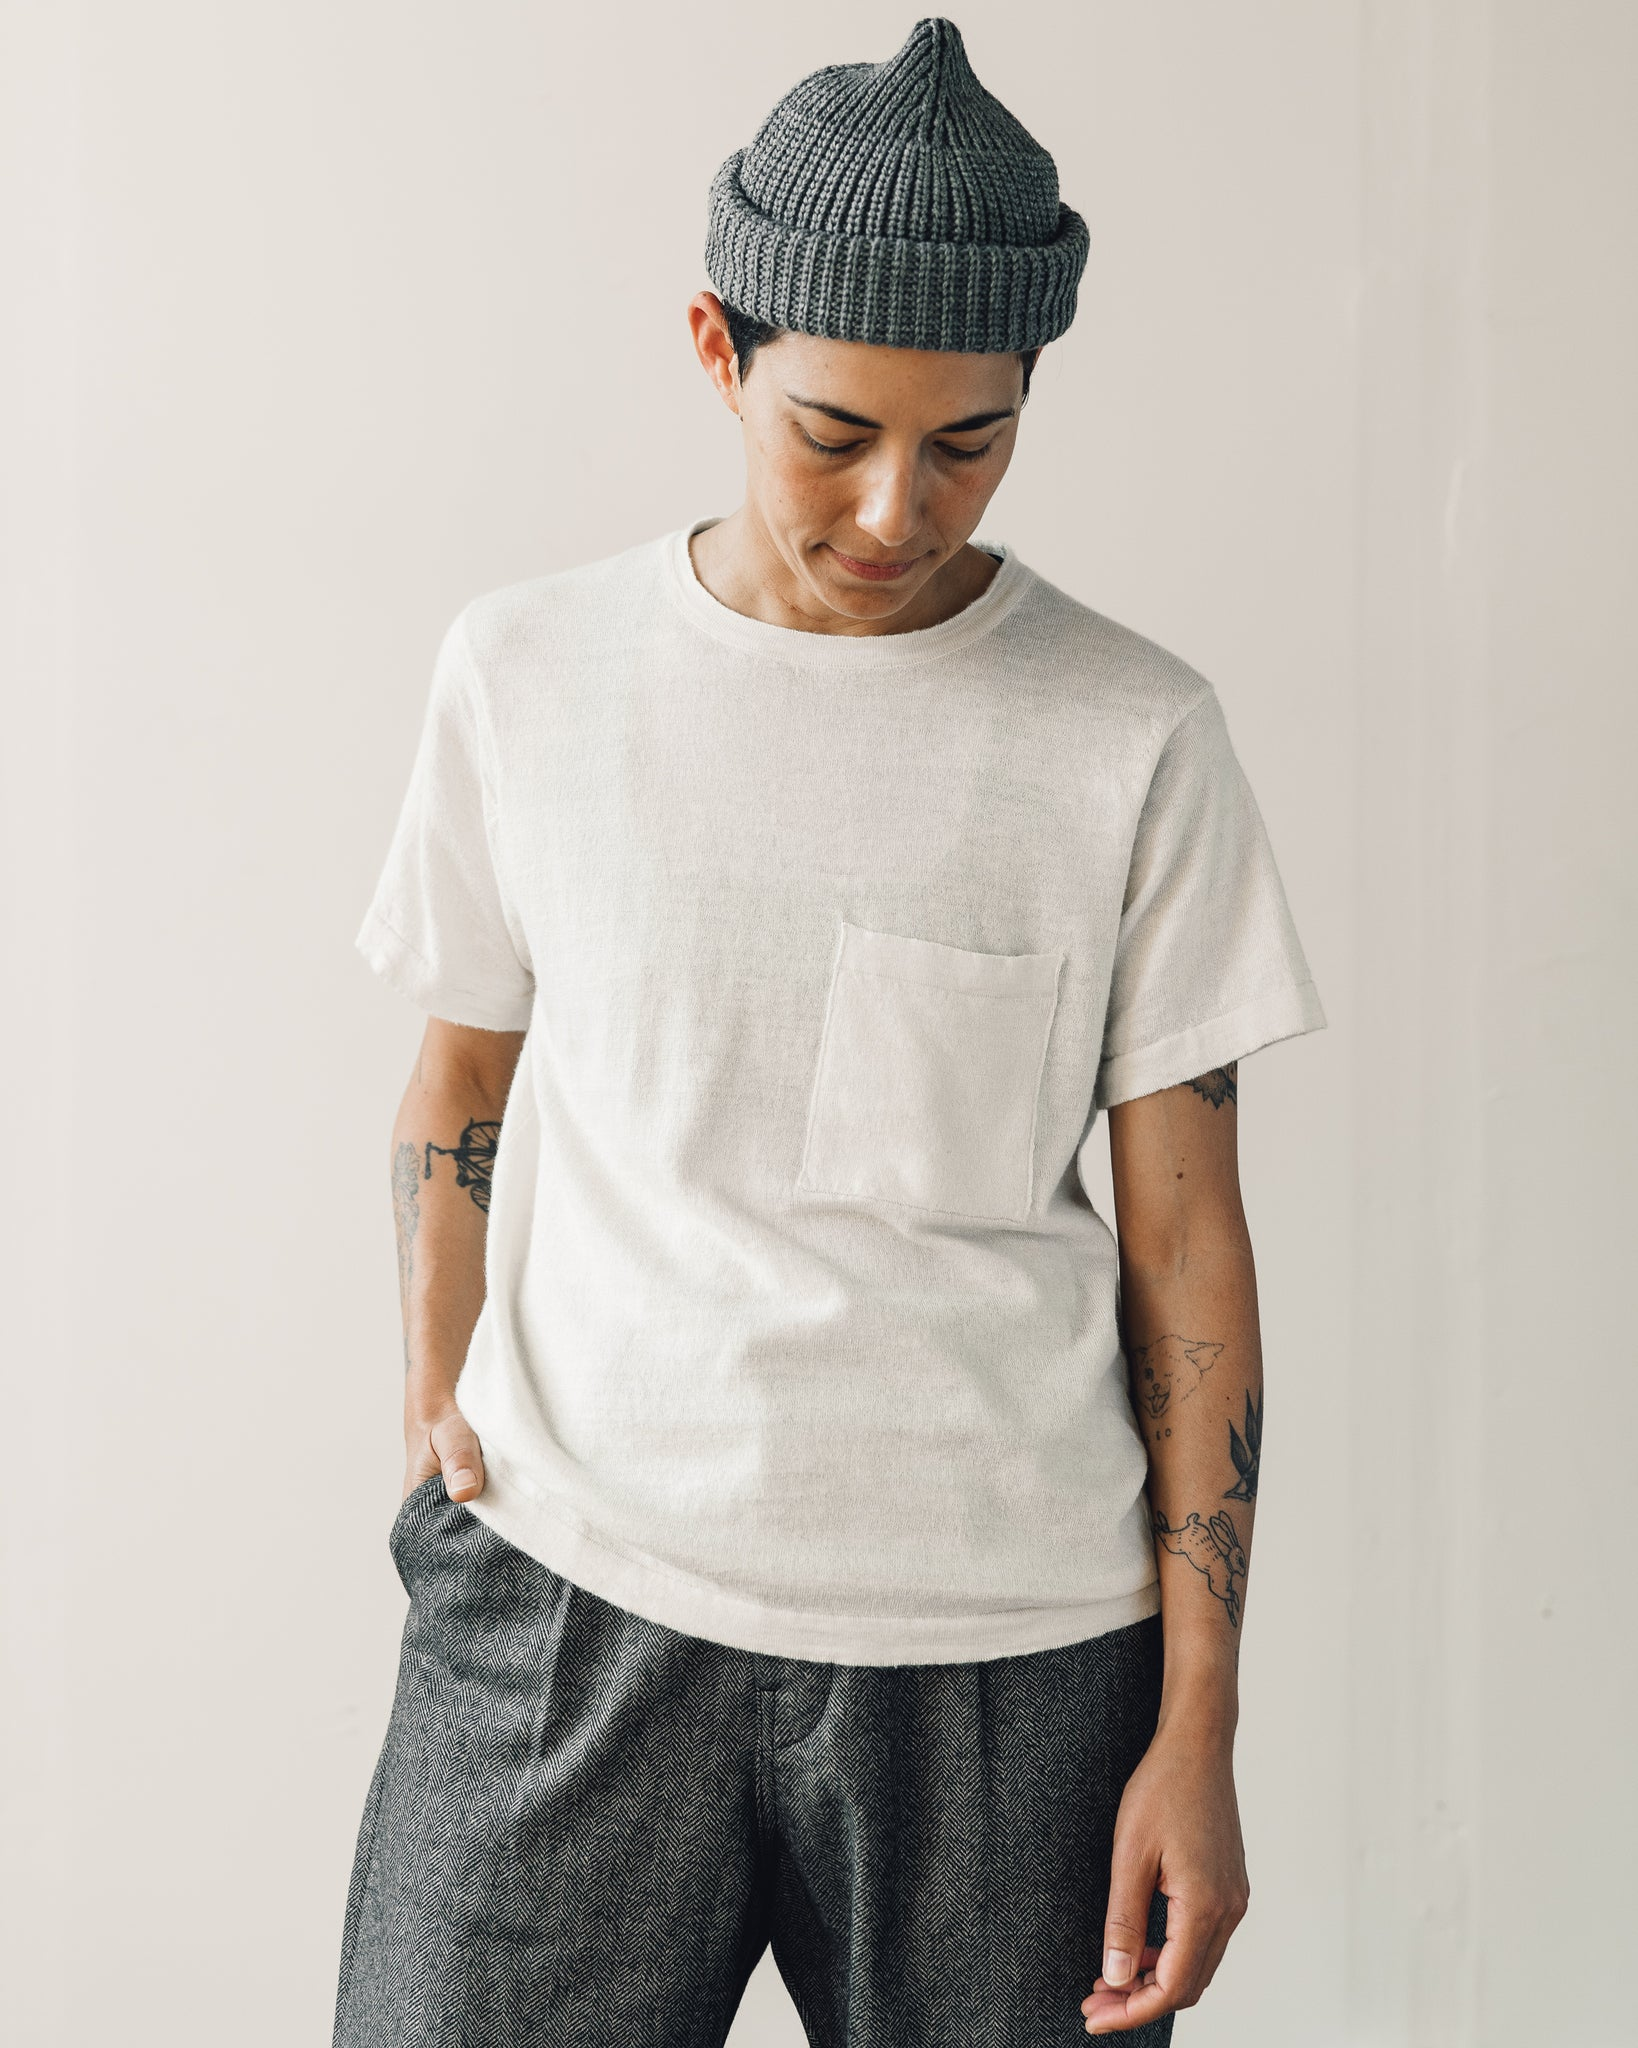 Evan Kinori Pocket Tee Sweater